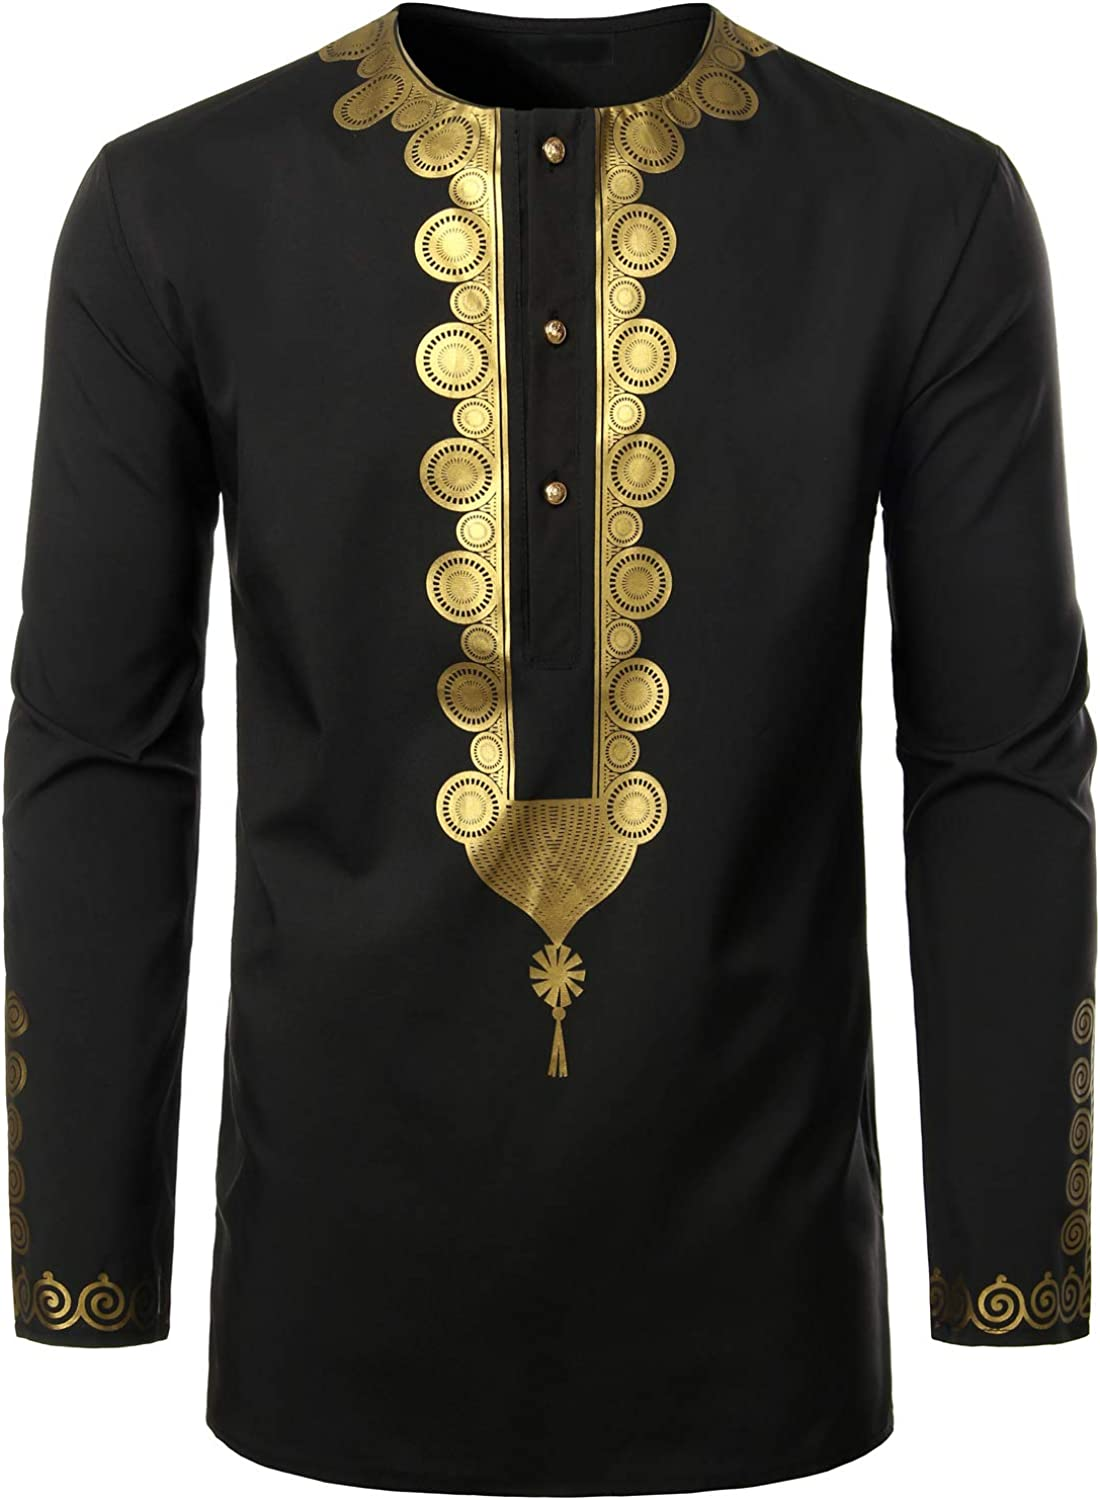 LucMatton Men's Traditional African Luxury Metallic Gold Printed Dashiki Shirt